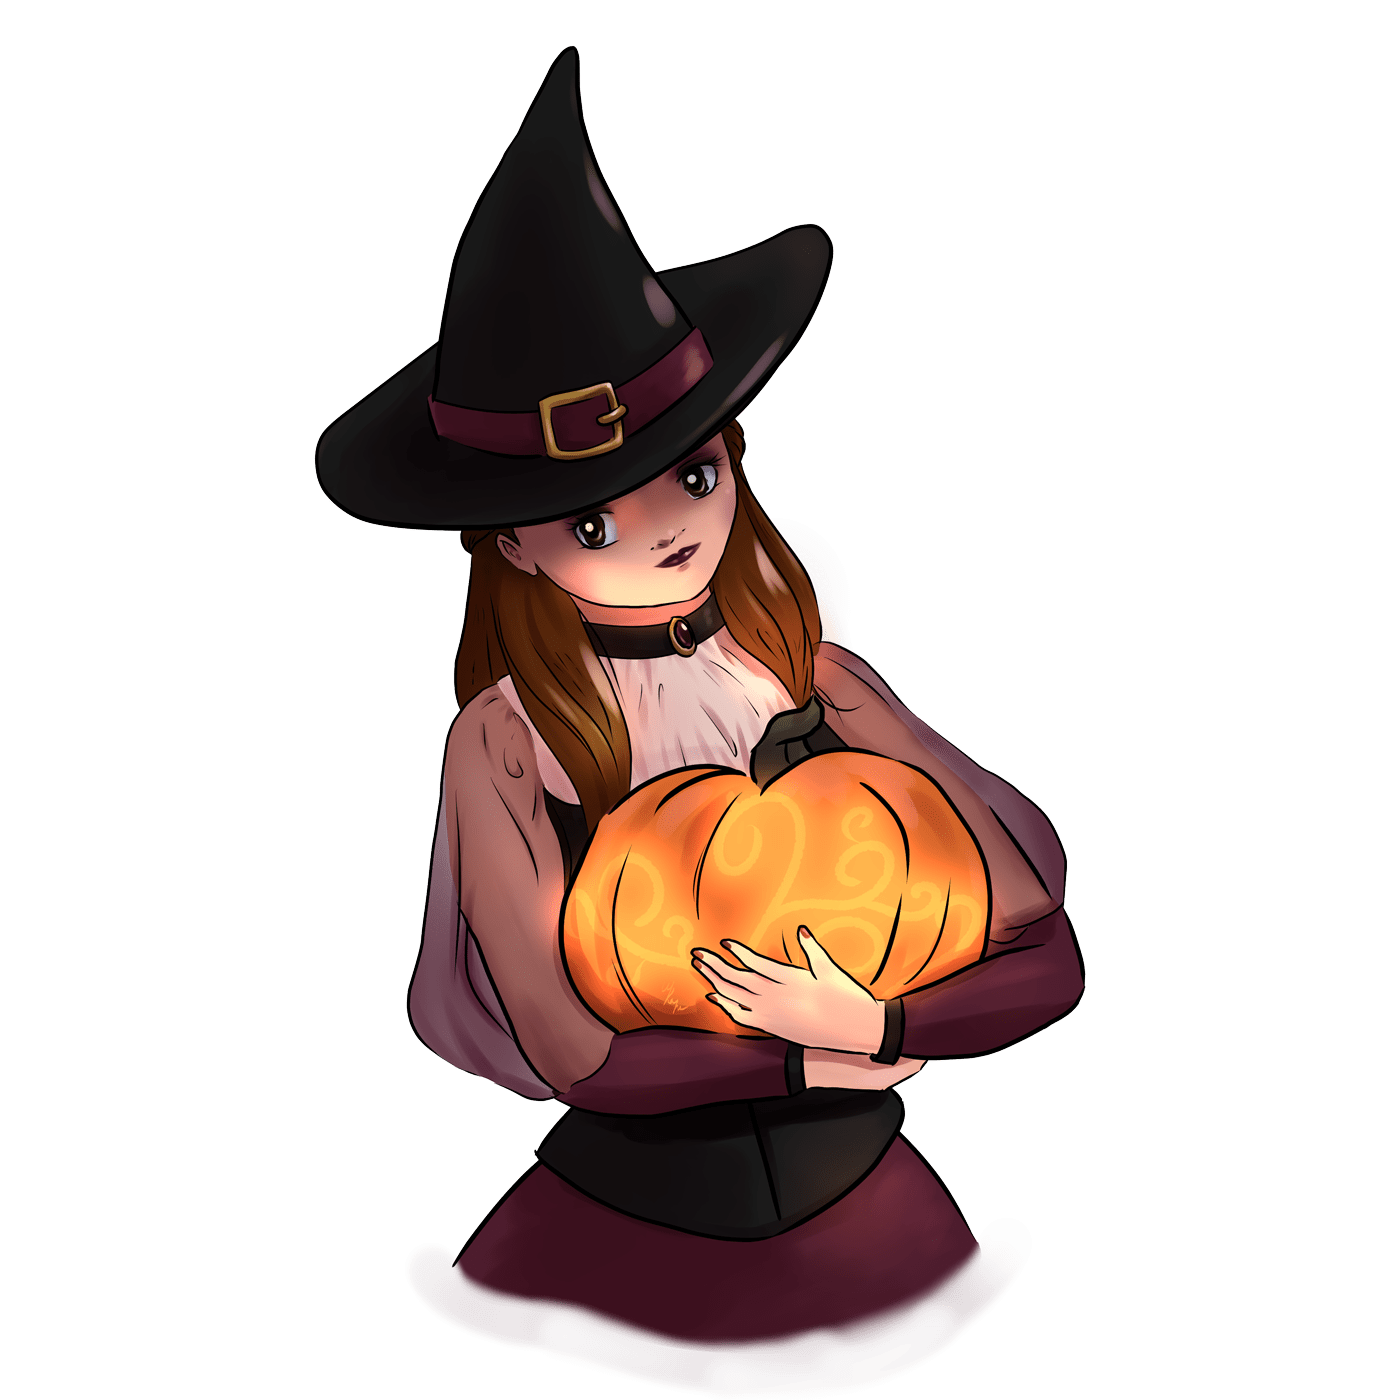 Witchy Me anime illustration